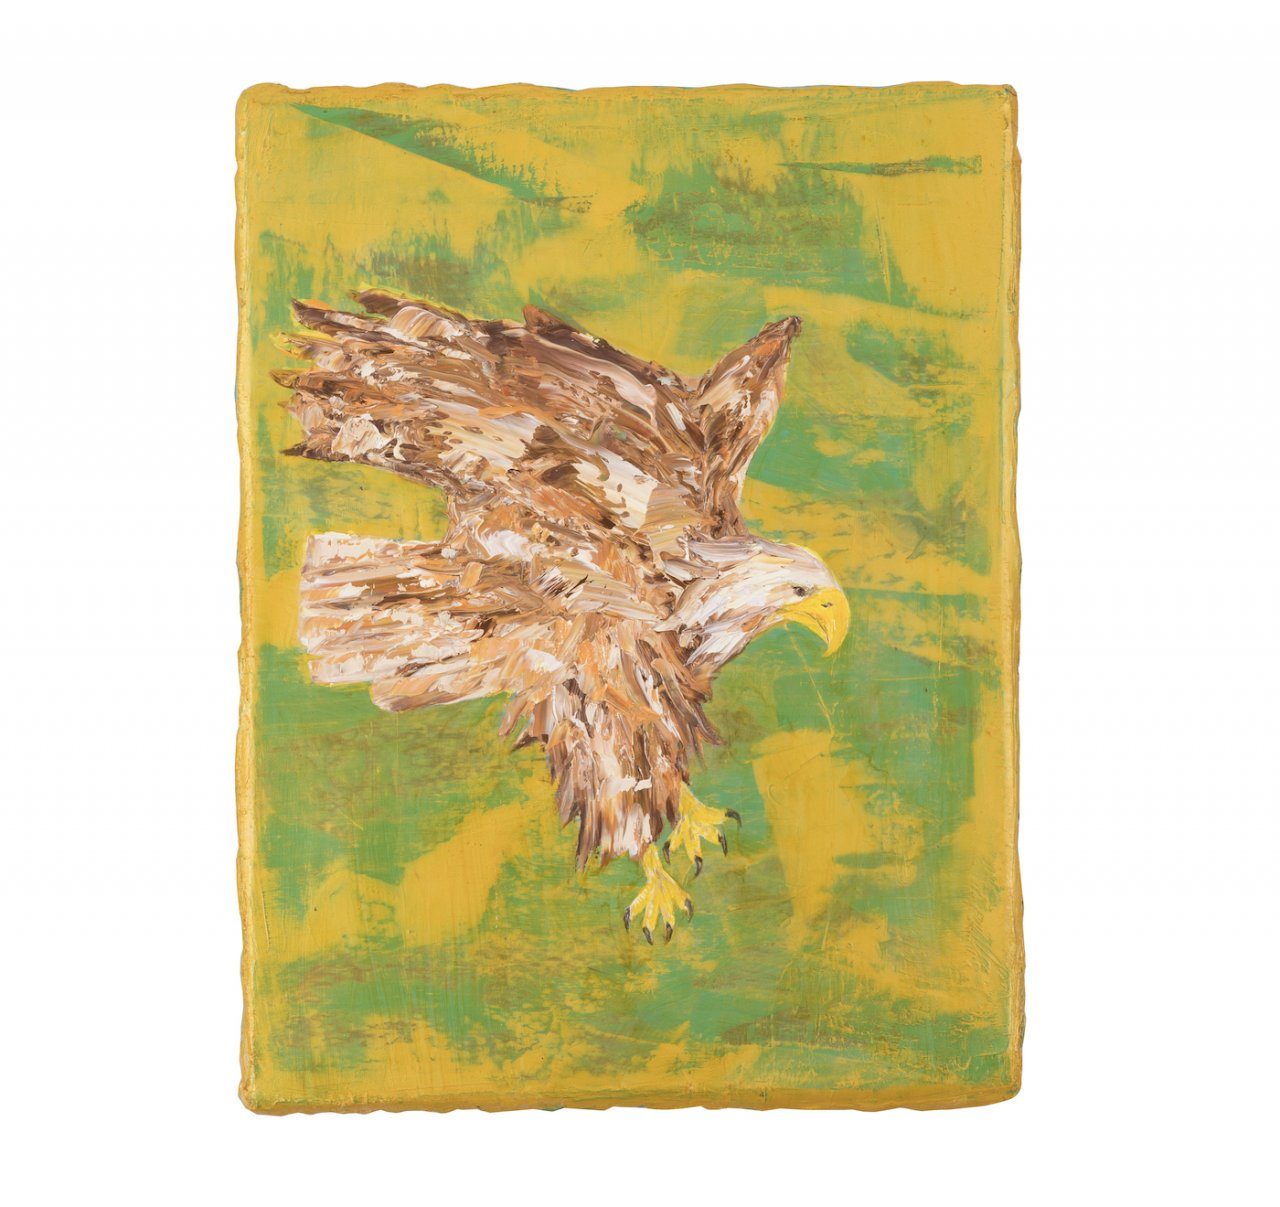 Eagle in the Gold Filed II, 2020 - Sultan Adler